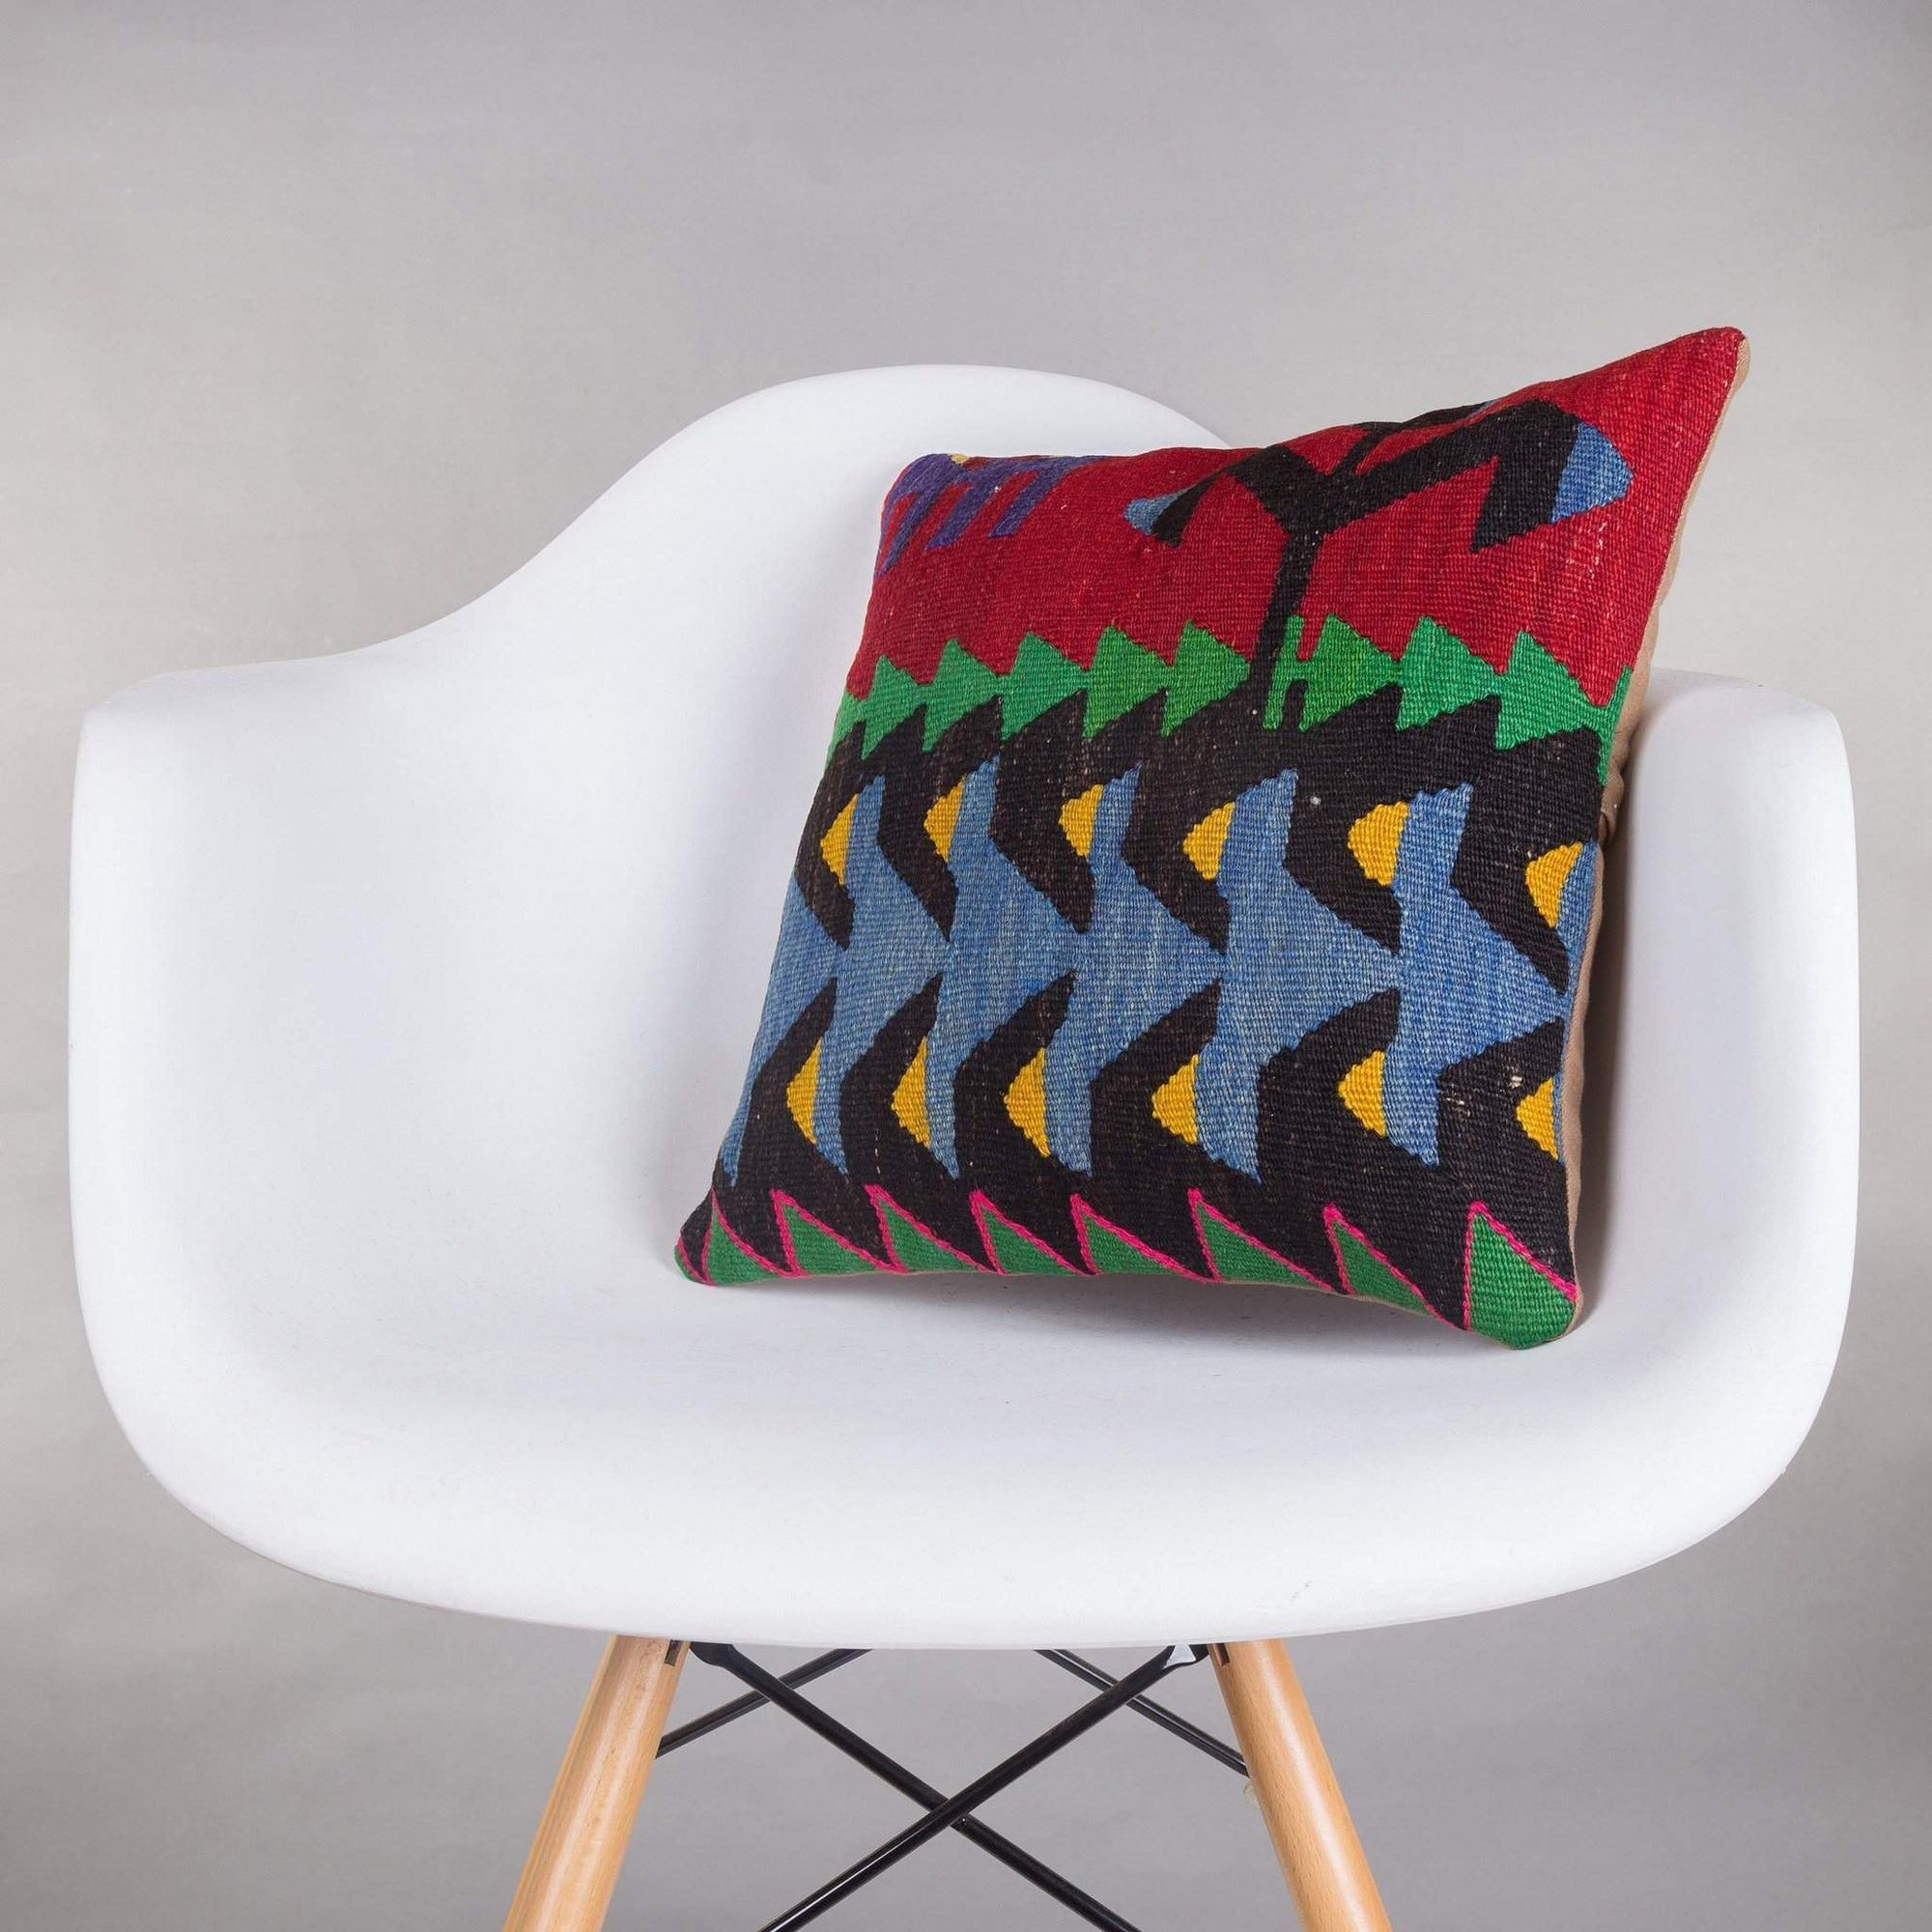 Geometric Multi Color Kilim Pillow Cover 16x16 5193